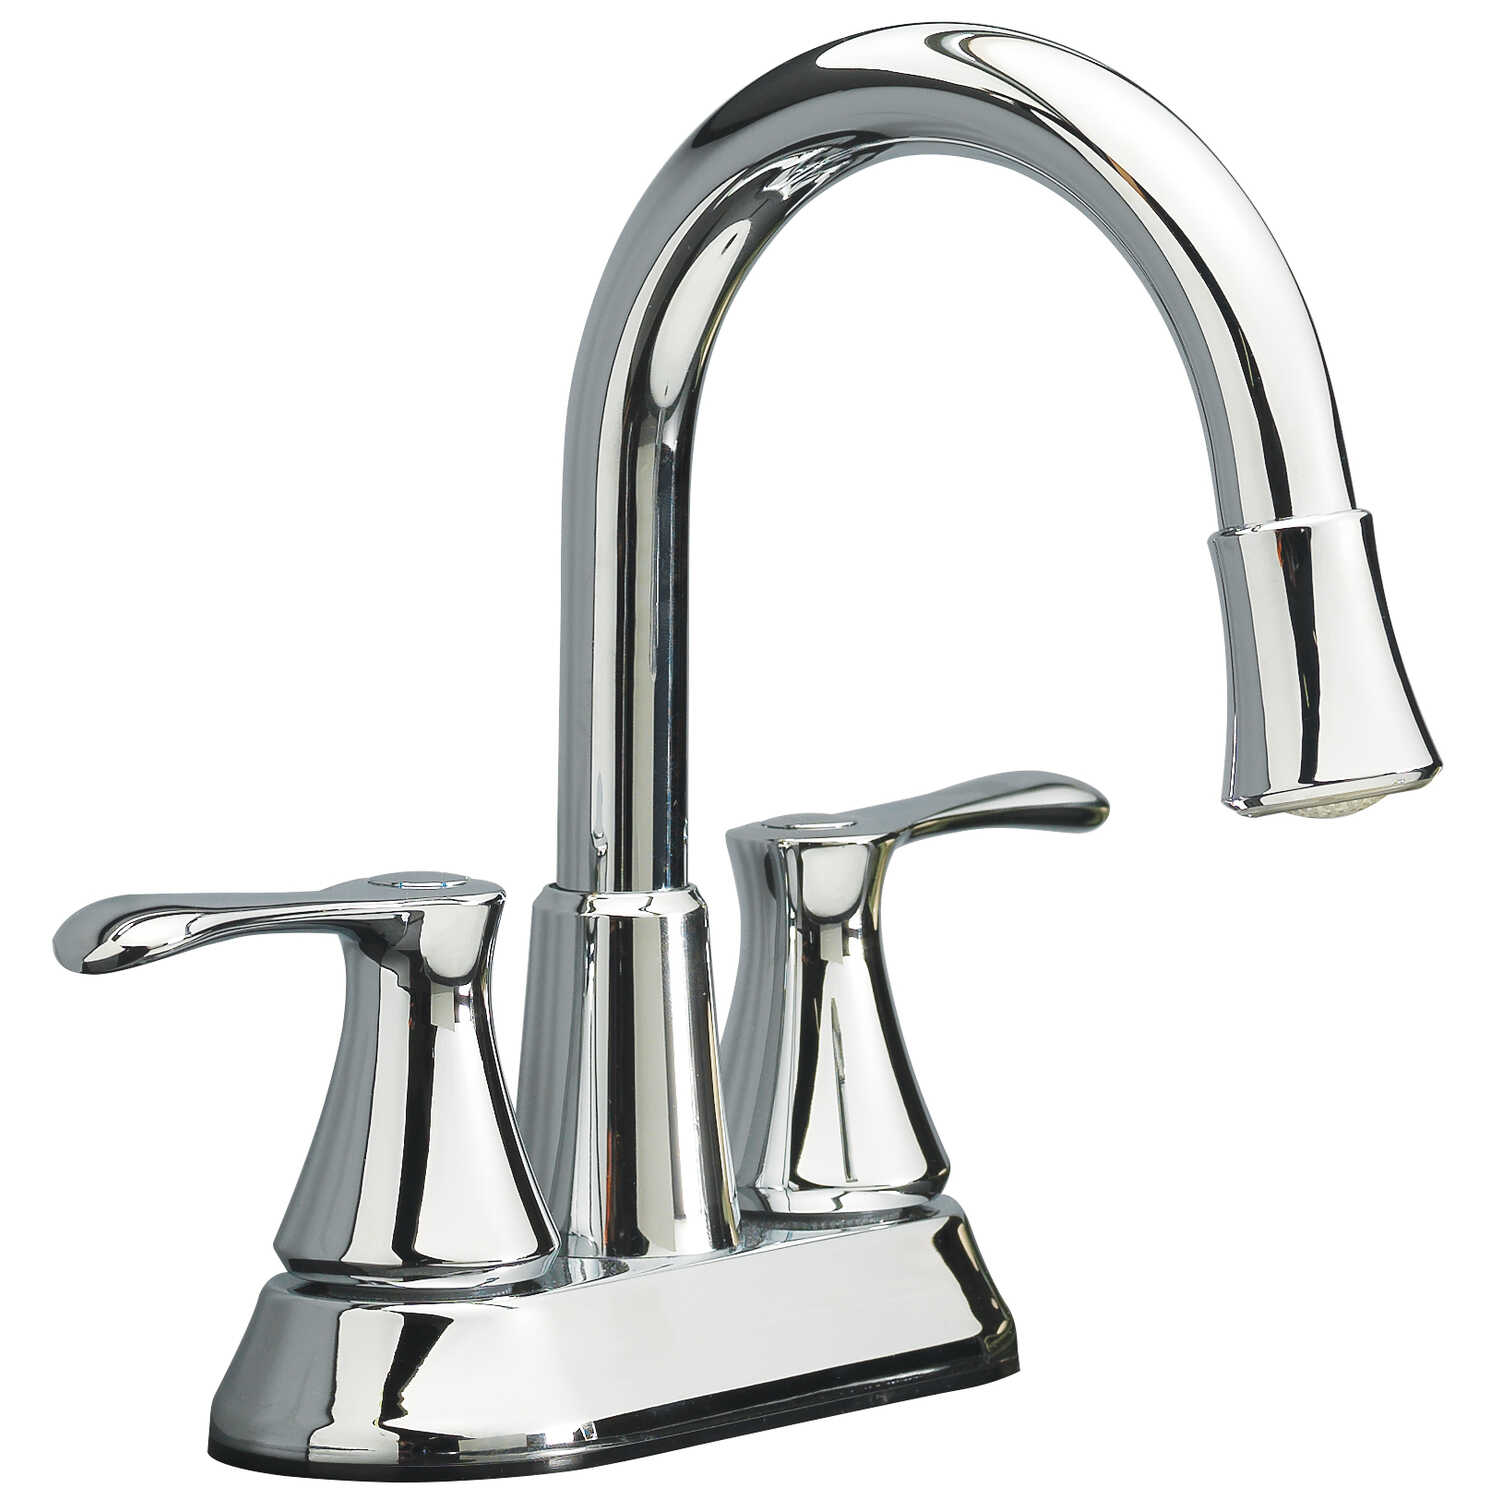 OakBrook  Doria  Two Handle LED  Lavatory Pop-Up Faucet  4 in. Chrome